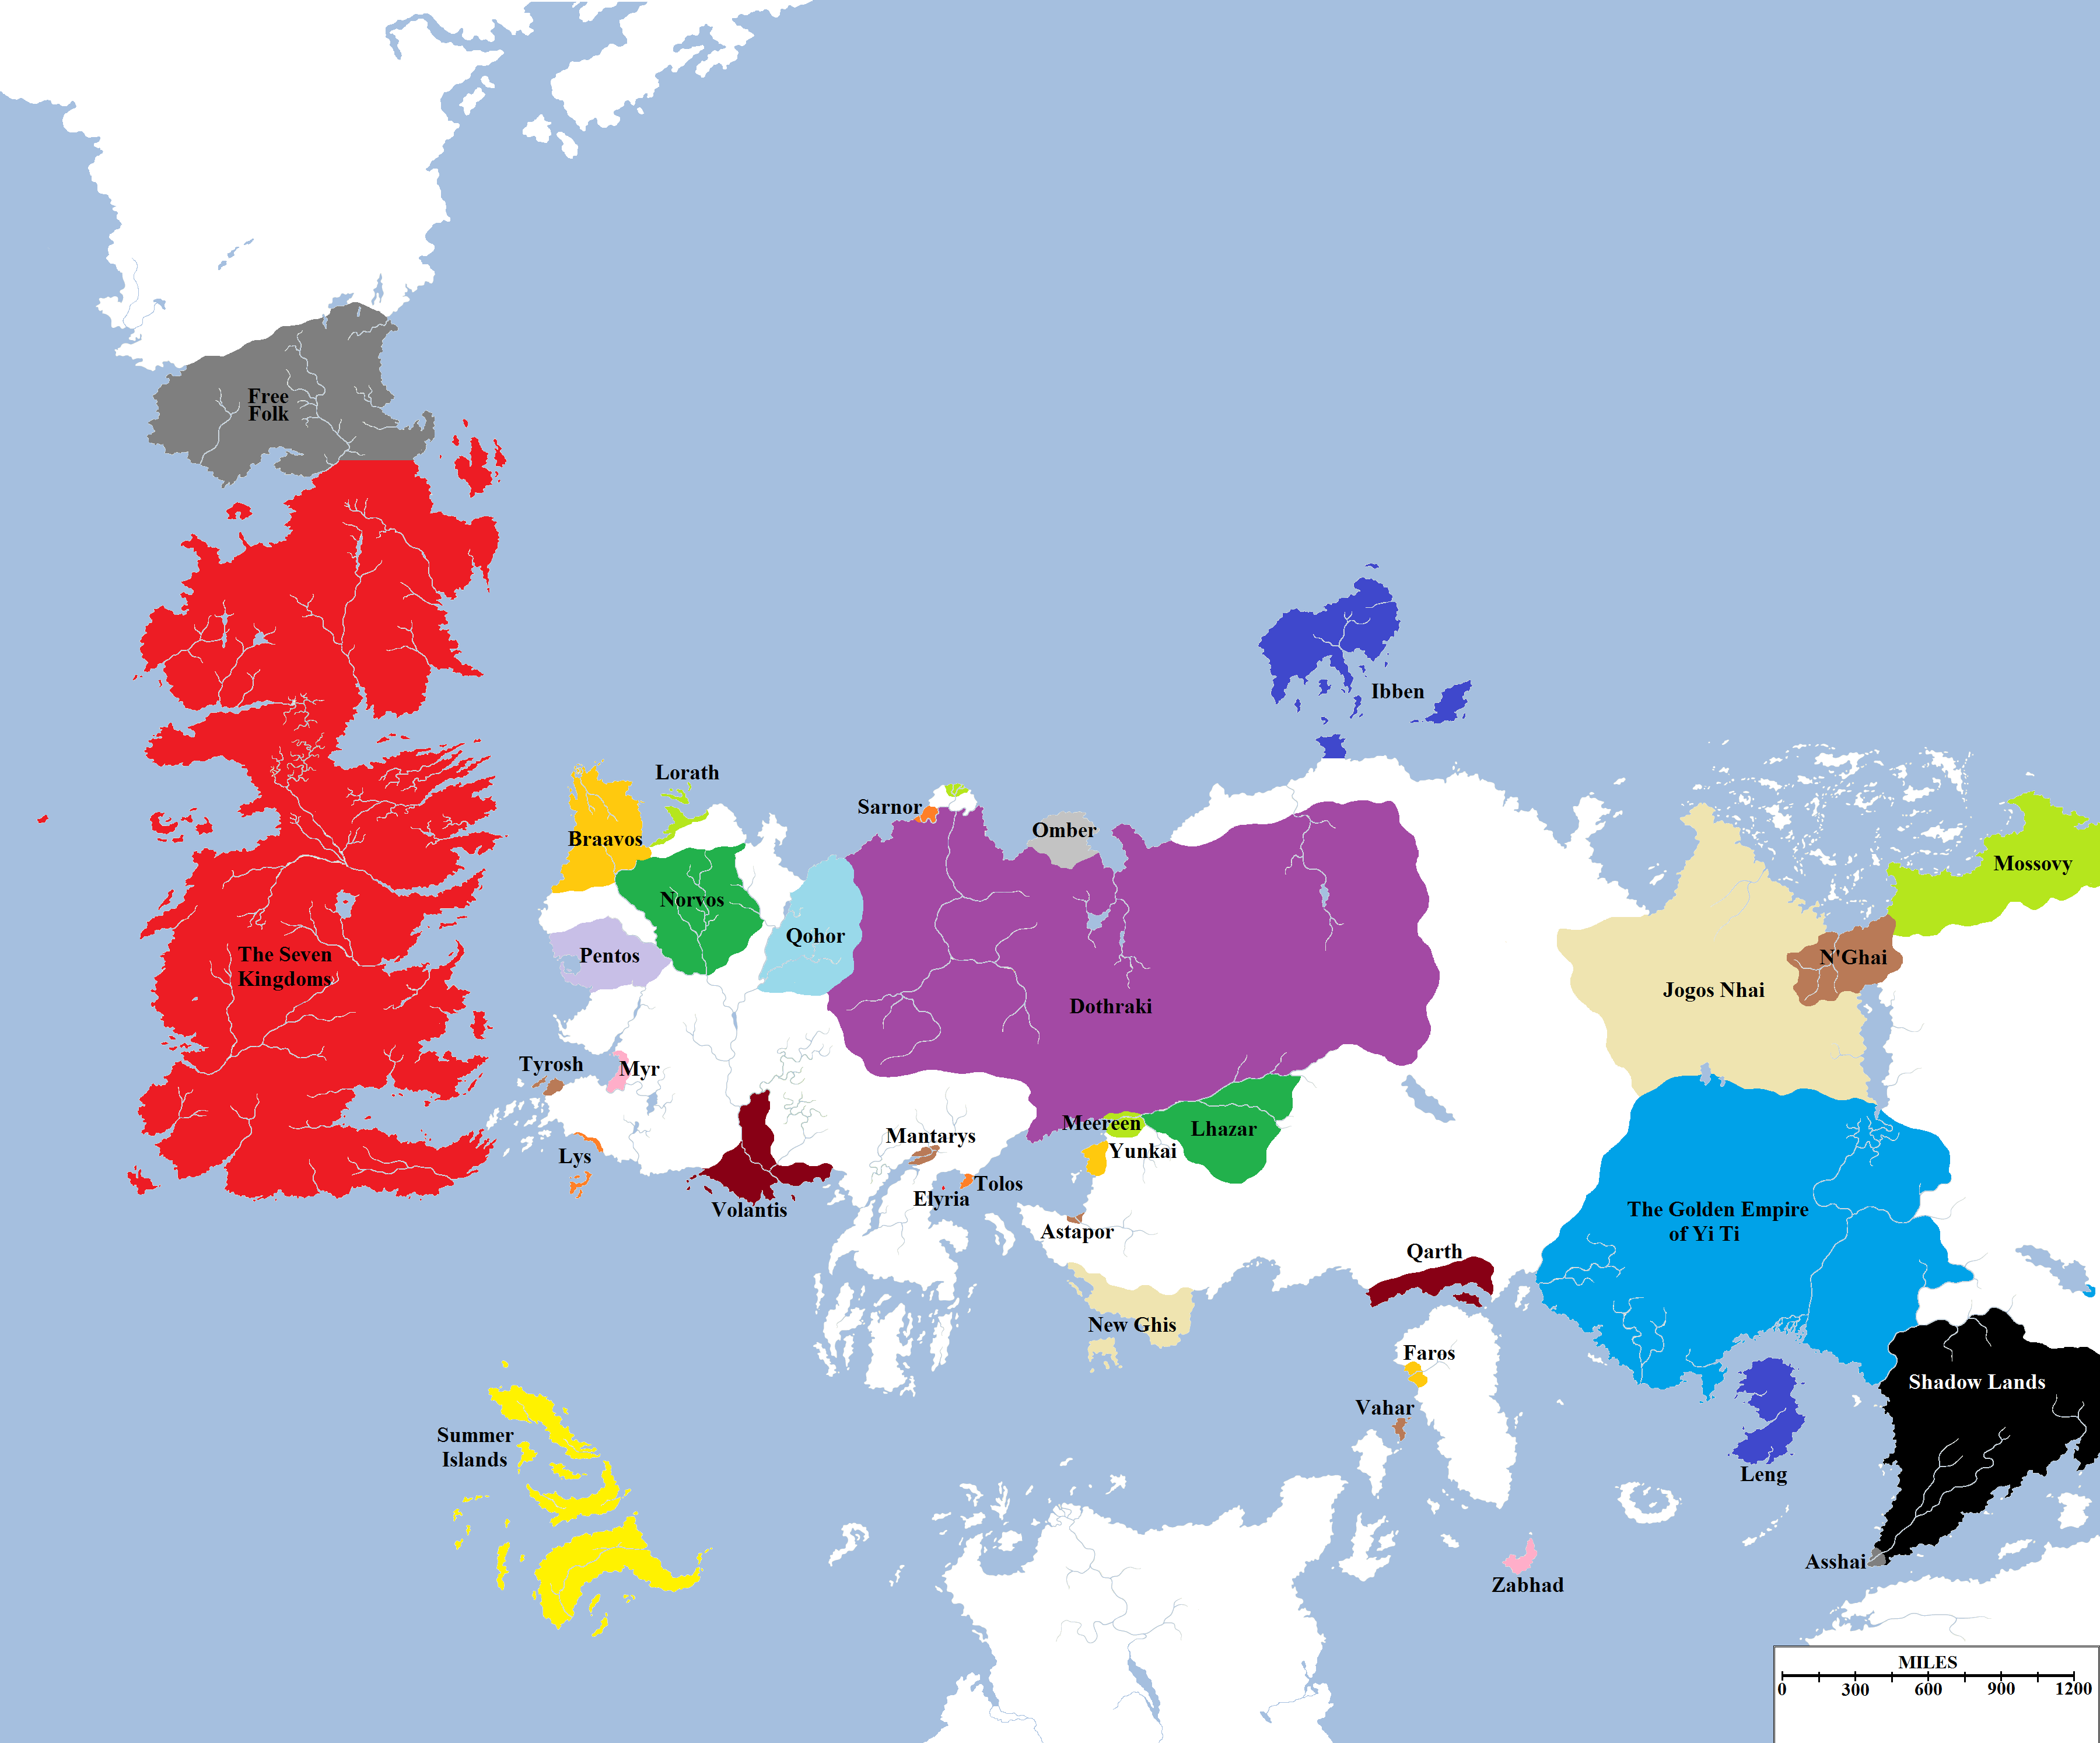 A Political Map of the Known World | Game of Thrones | Game ... on game of thrones continents, game of thrones world map pdf, game of thrones maps and families, ice and fire world map, sca known world map, game of thrones chart,